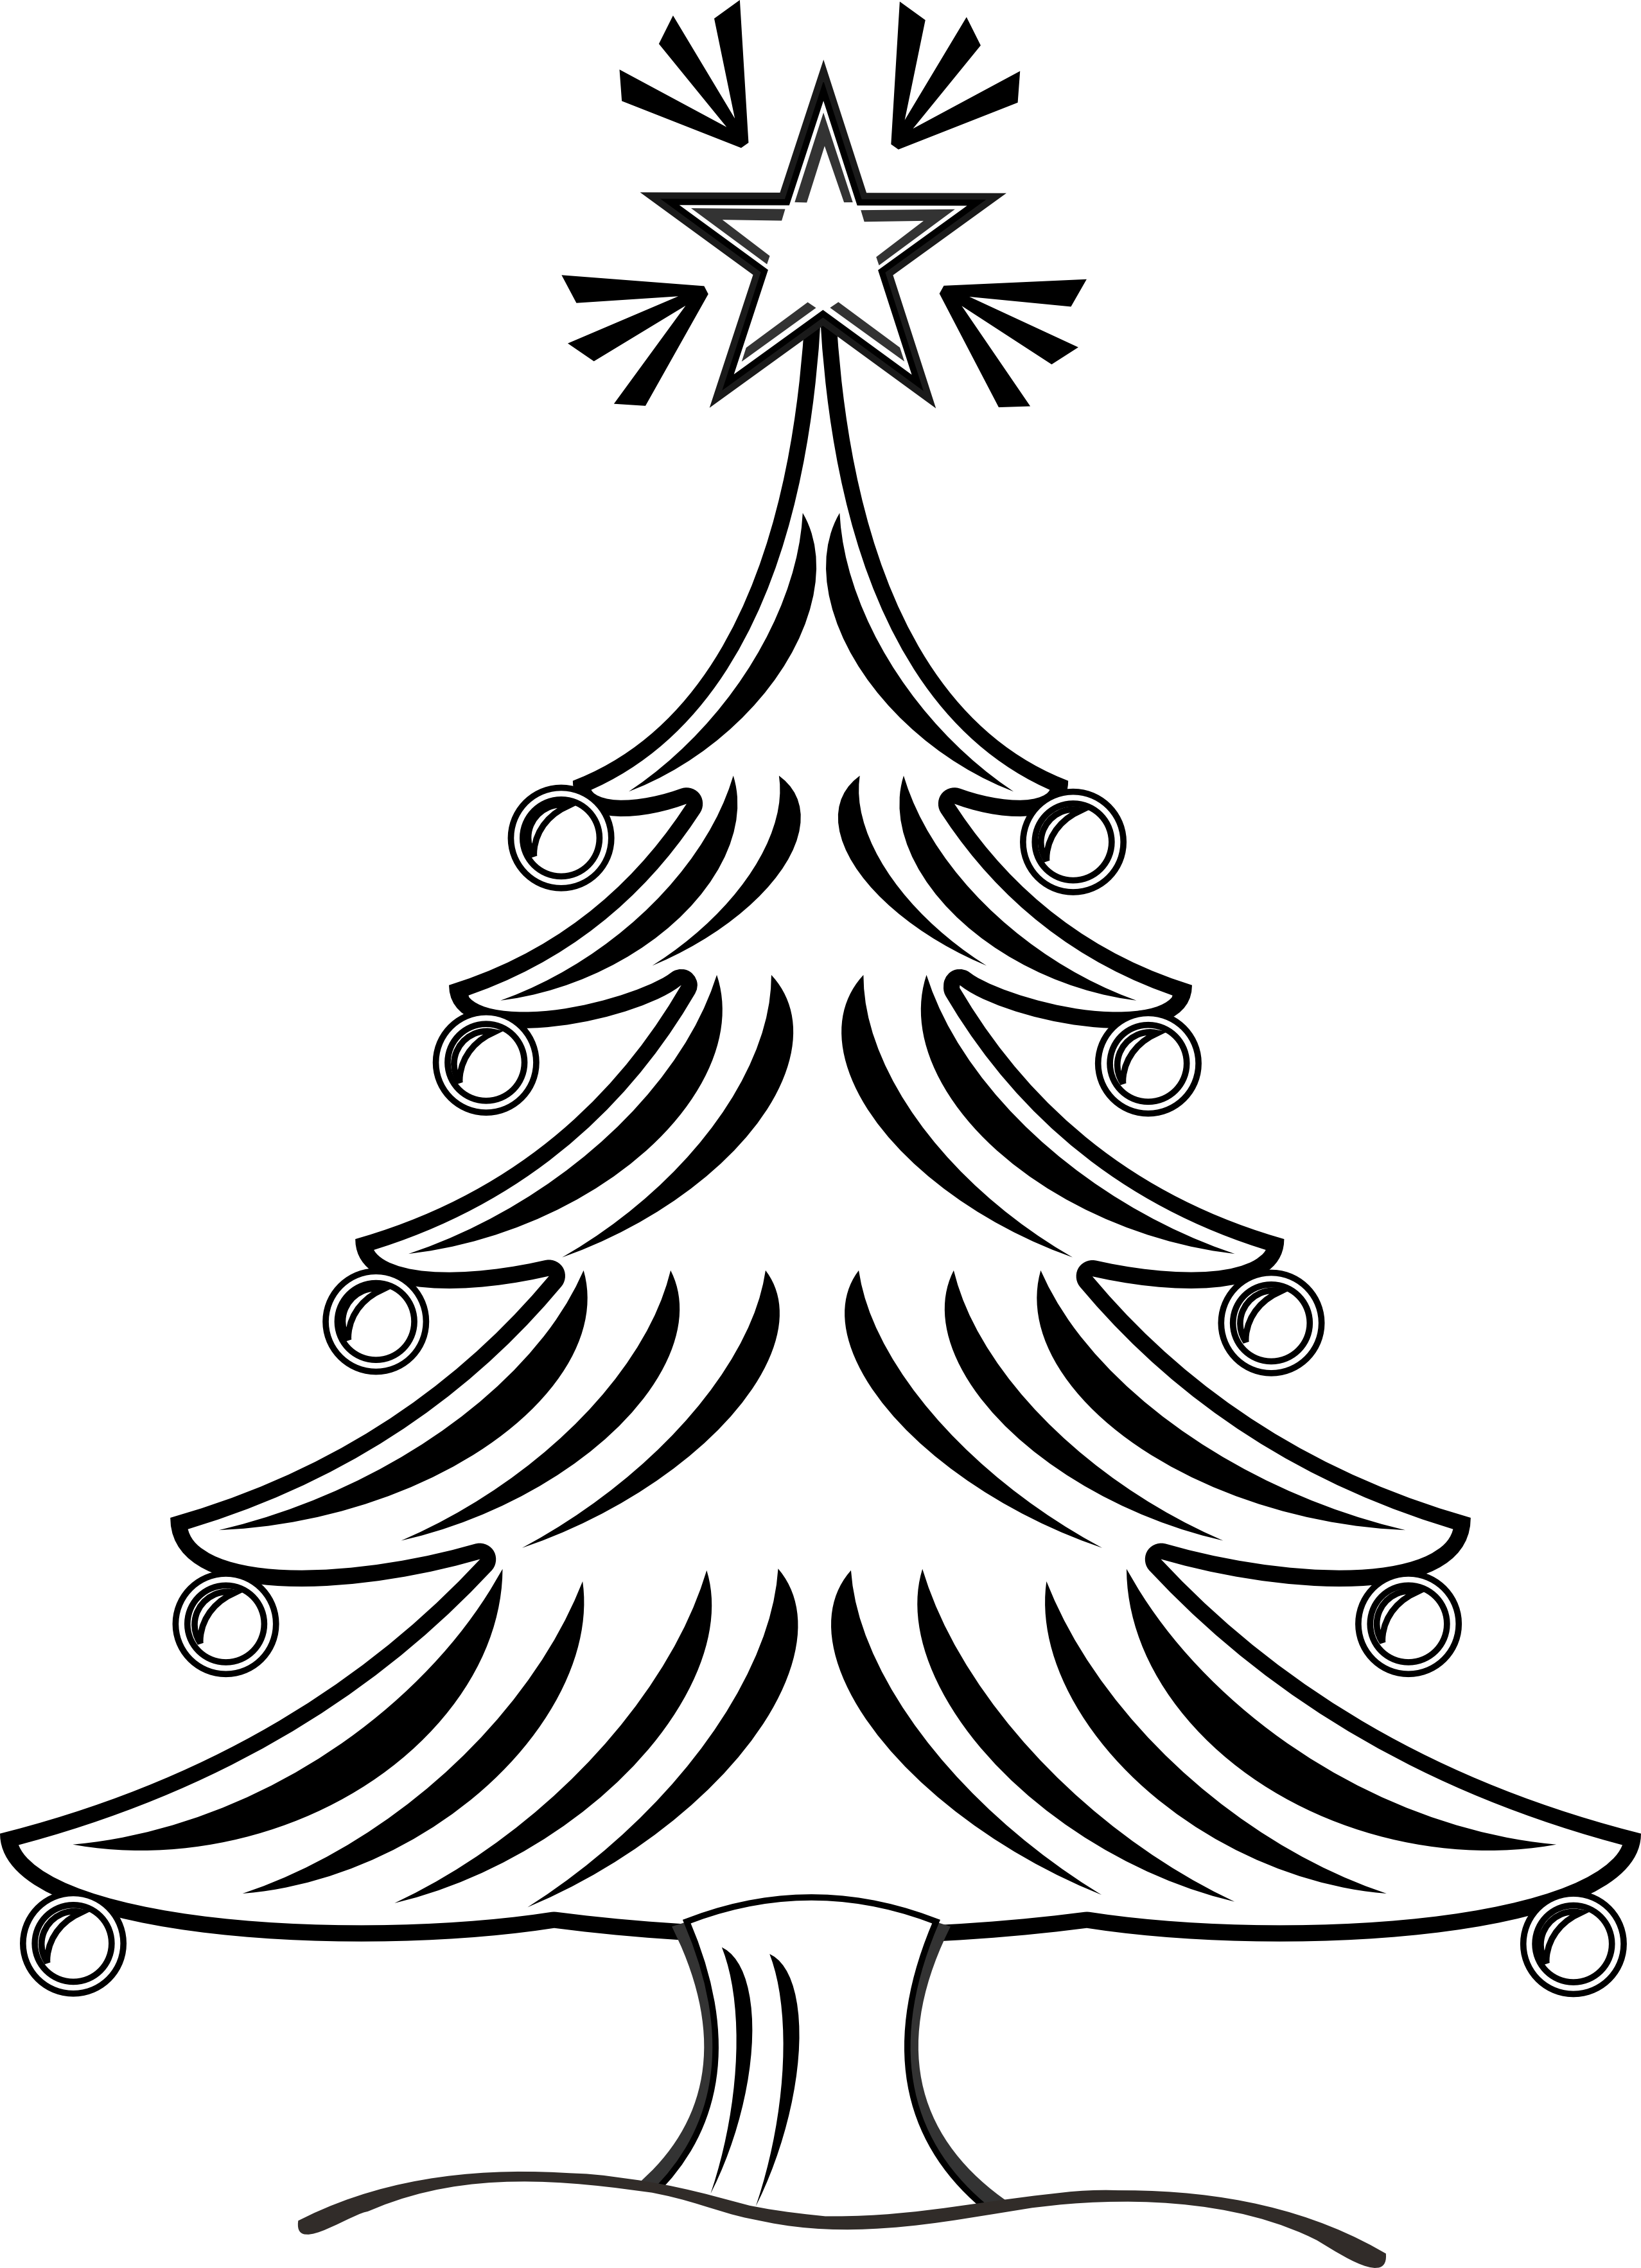 Pine drawing hipster. Christmas tree ideas for